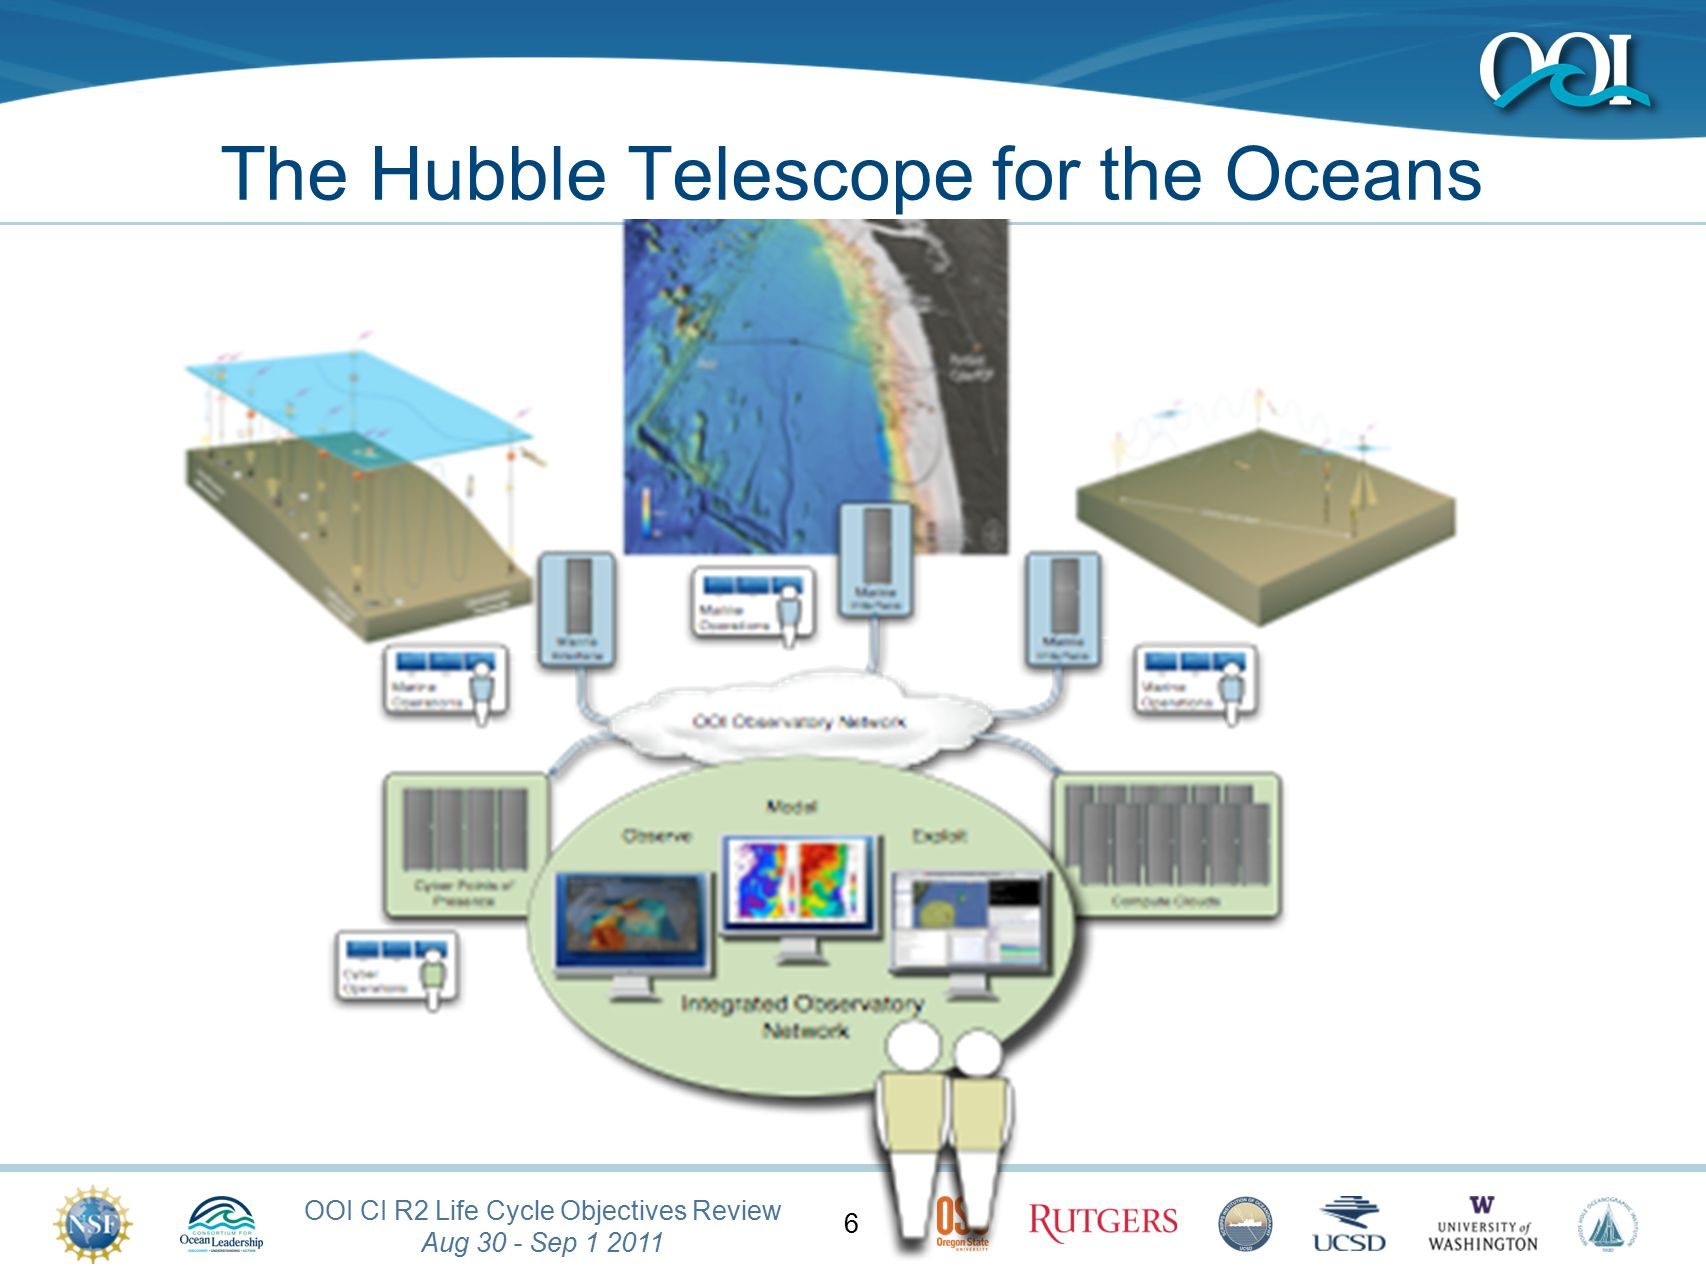 OOI Review Year 2 May 16-20, 2011 27 Instrument Development Kit Scheduled for Release-2 Includes: Logical Test Facility Workbench (dry testing) Marine Specific System Test Facility (wet testing) Configurations for RSN and CGSN observatories Access and Management Portals for Interactive access